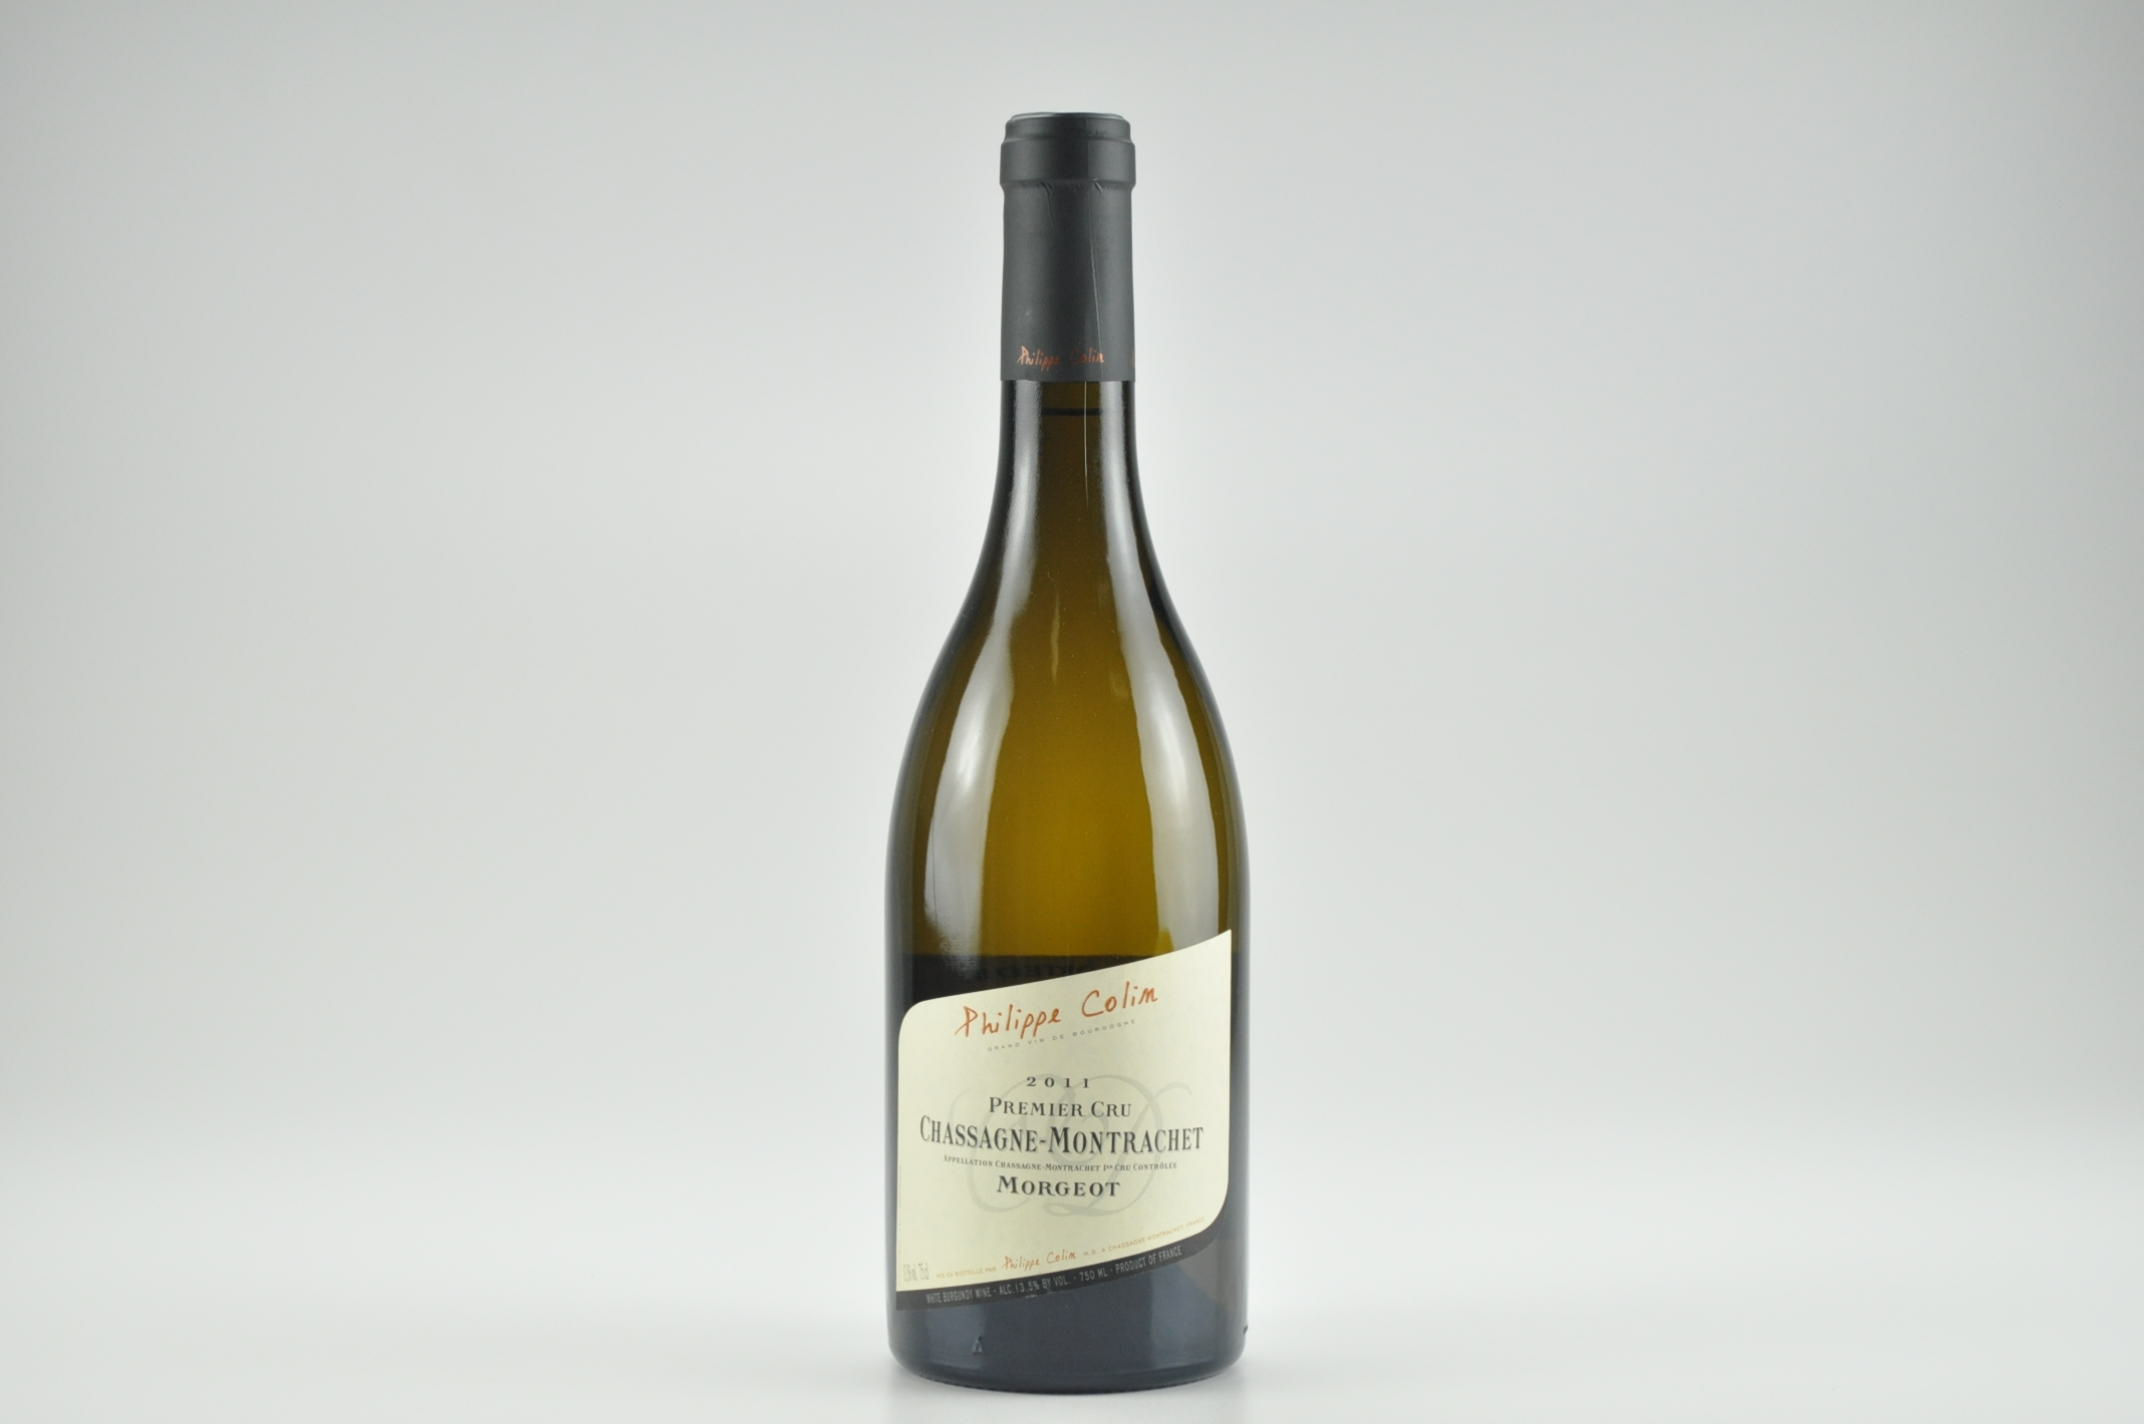 2011 Philippe Colin Morgeot Chassagne-Montrachet WS--92